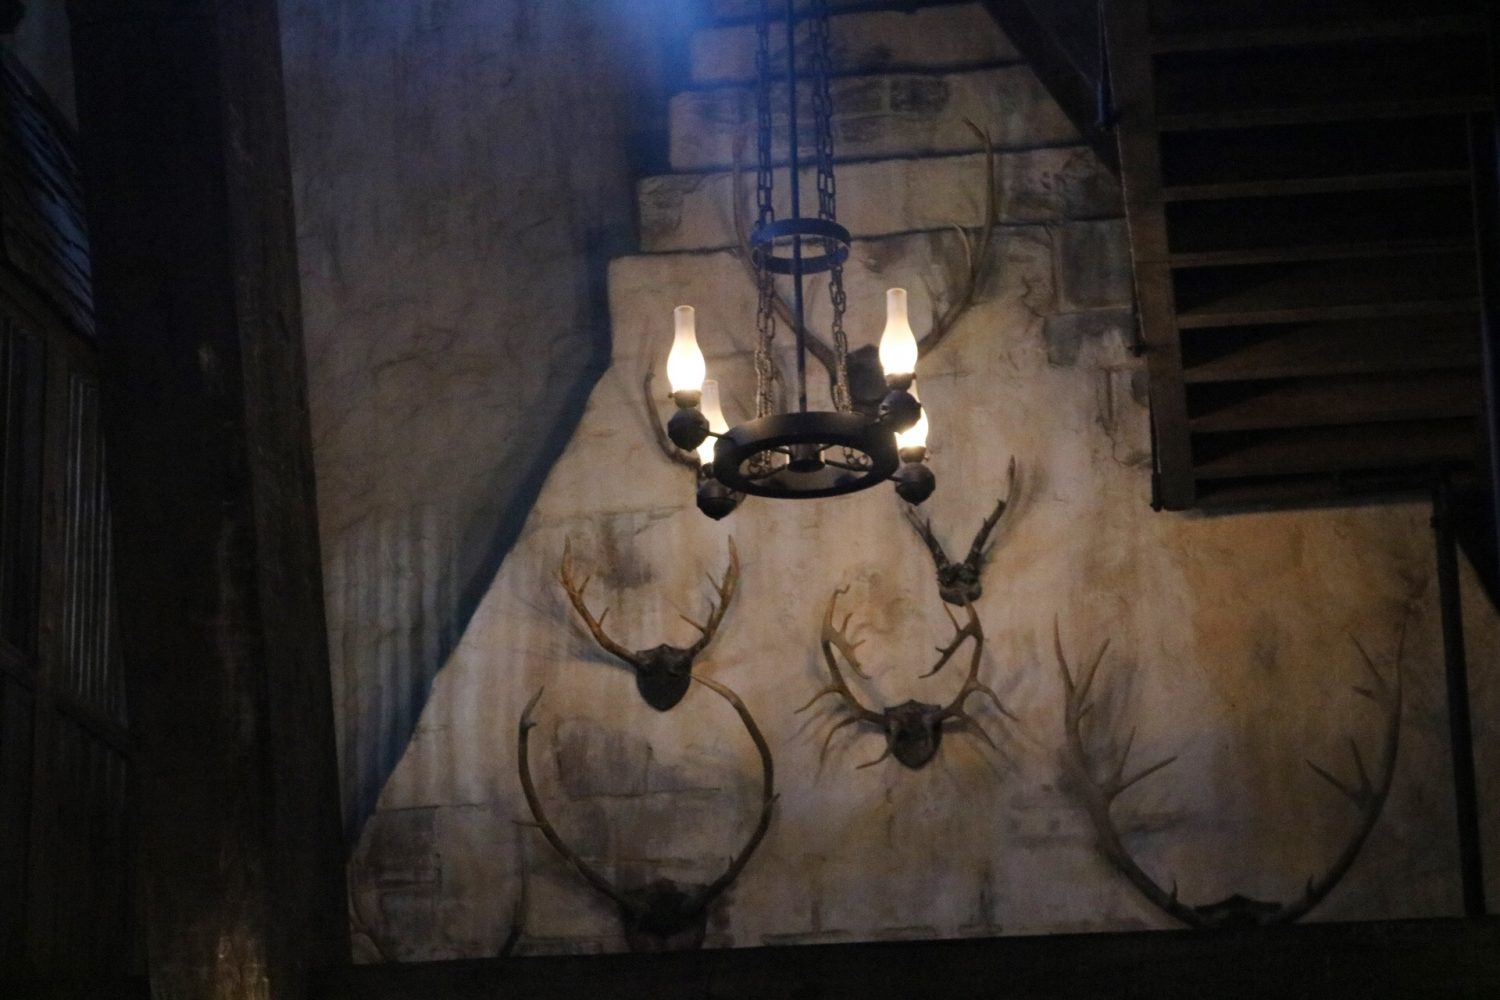 The Three Broomsticks Restaurant